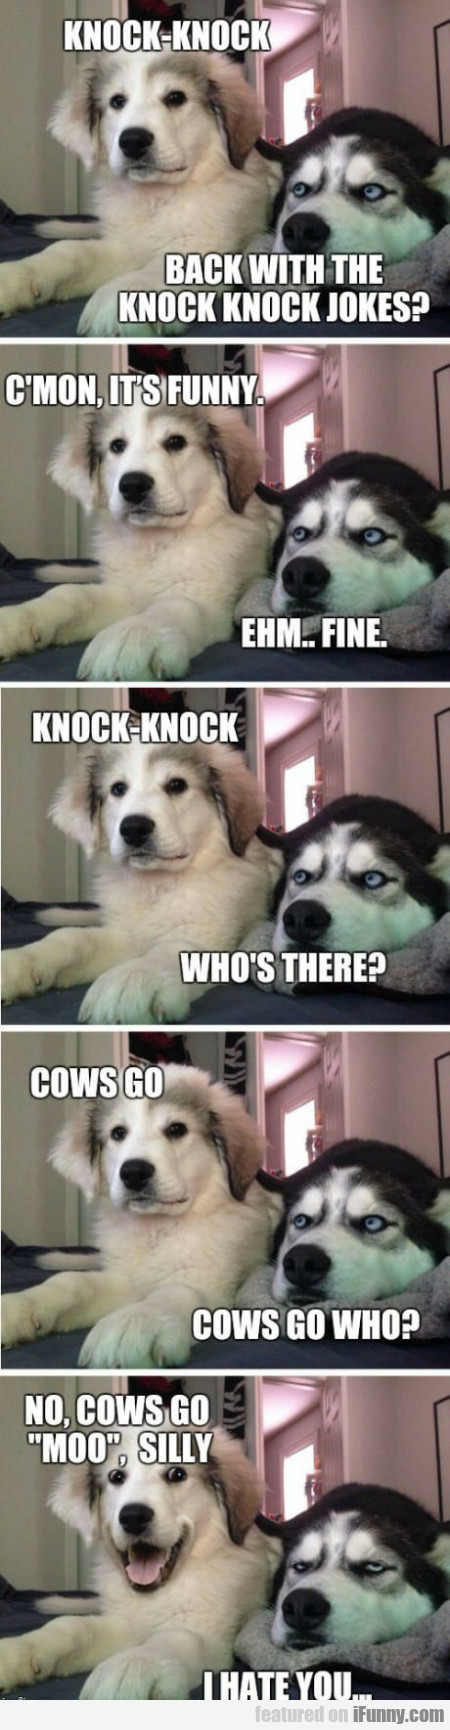 Knock-knock - Back With The Knock Knock Jokes?